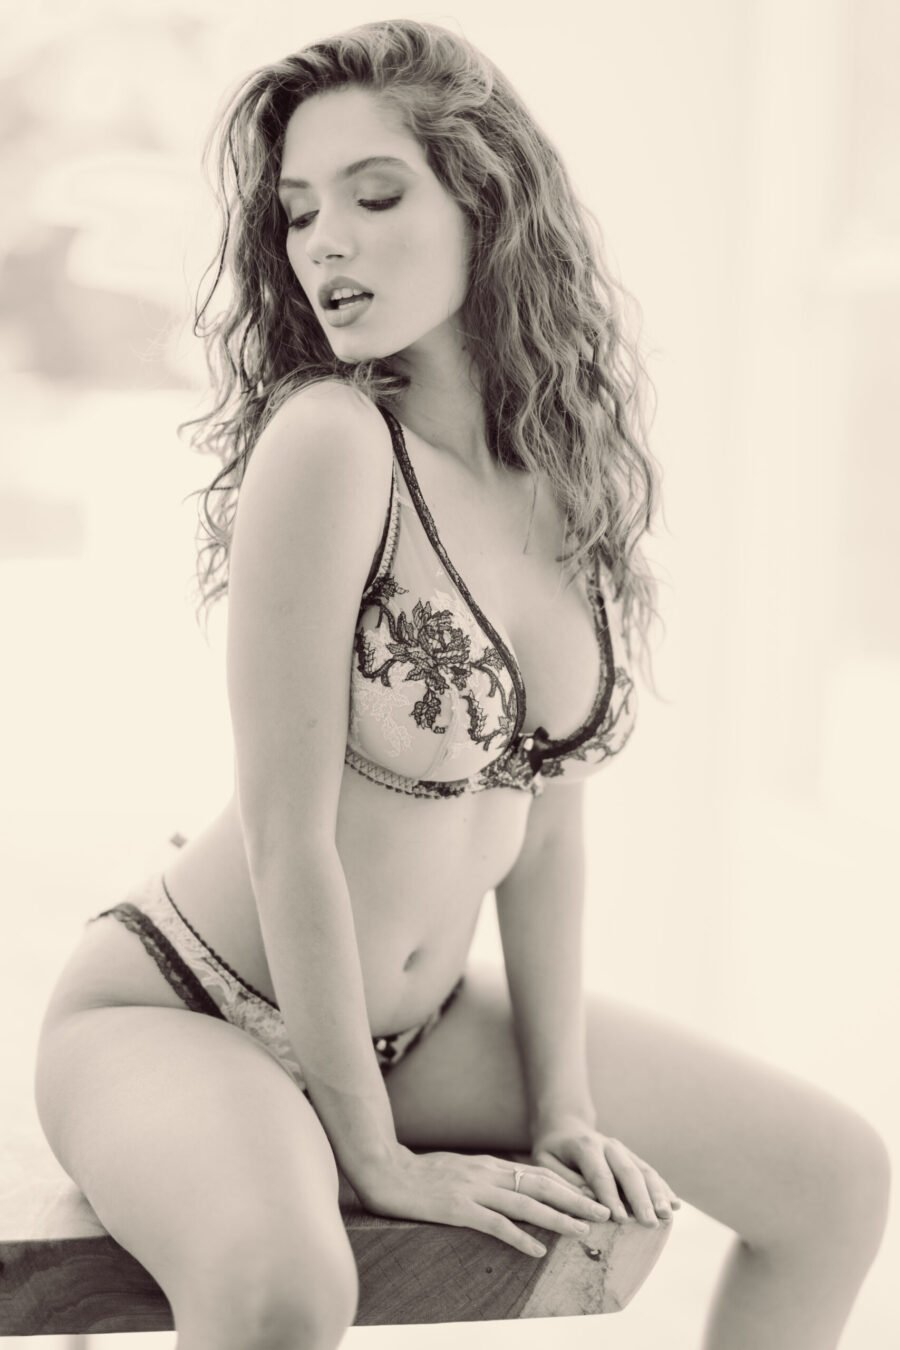 Bianca Rodrigues posing in lingerie in a black and white photoshoot